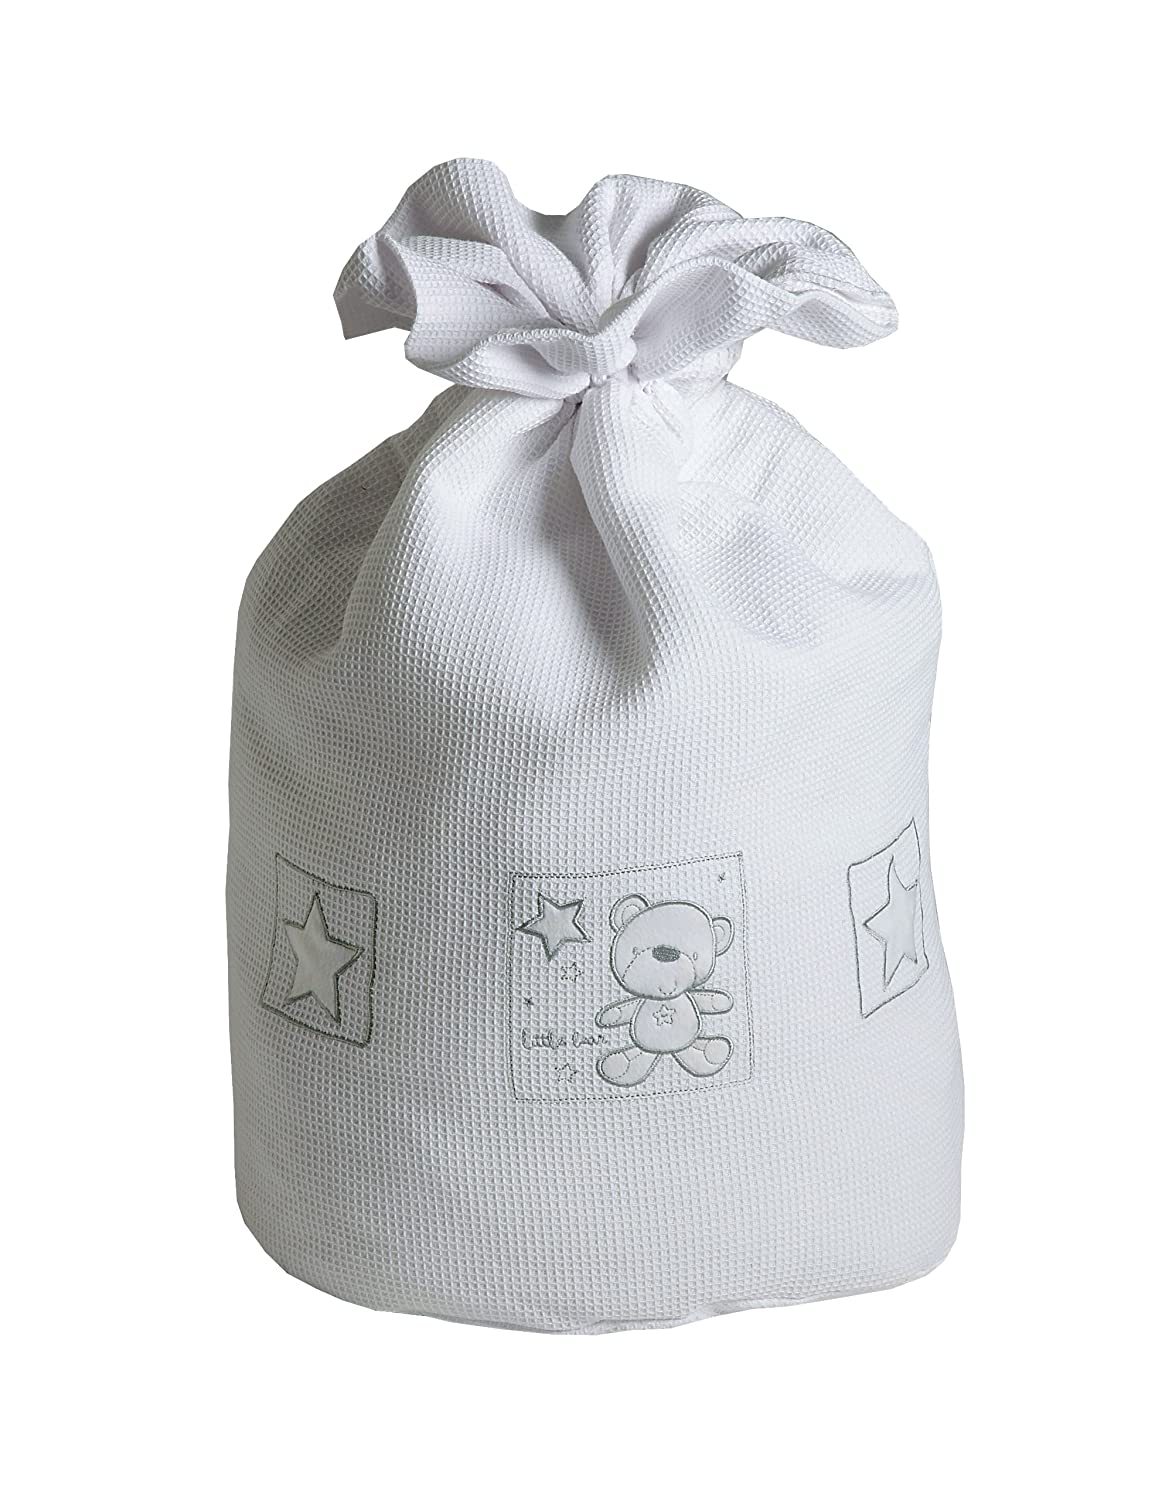 Baby Elegance Star Ted Laundry Bag (White) 3125